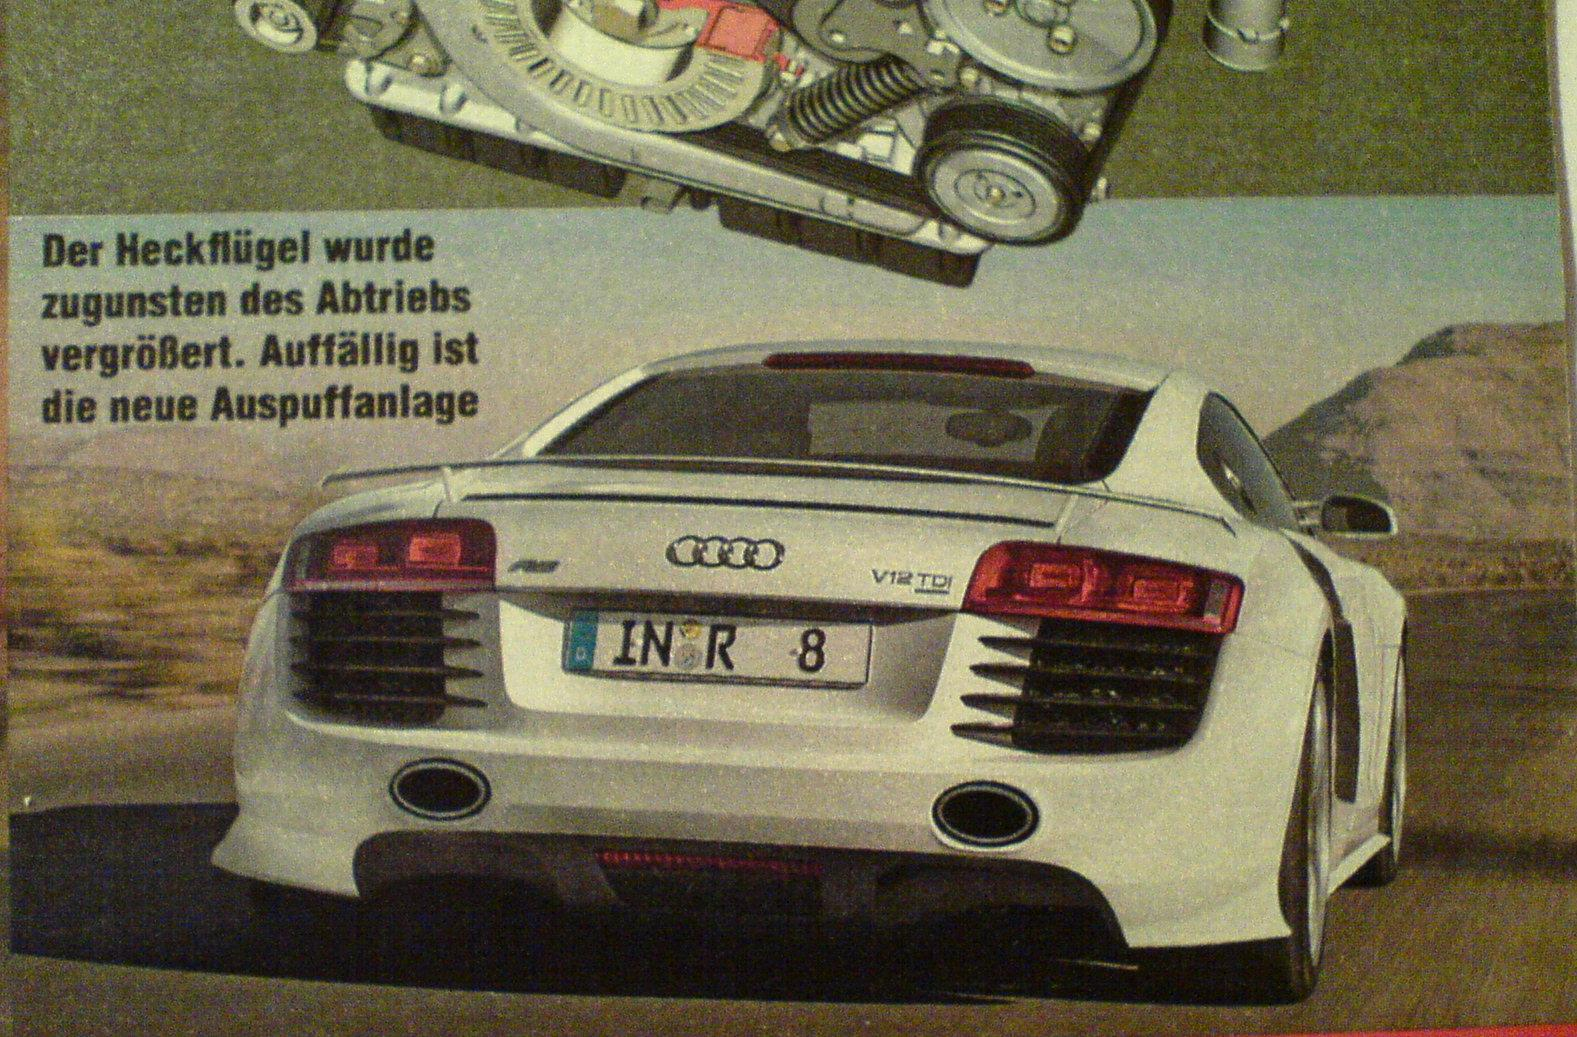 audi r8 v12 tdi kommt alle anderen audi modelle der audi a3 3 2 quattro das gr te audi a3. Black Bedroom Furniture Sets. Home Design Ideas